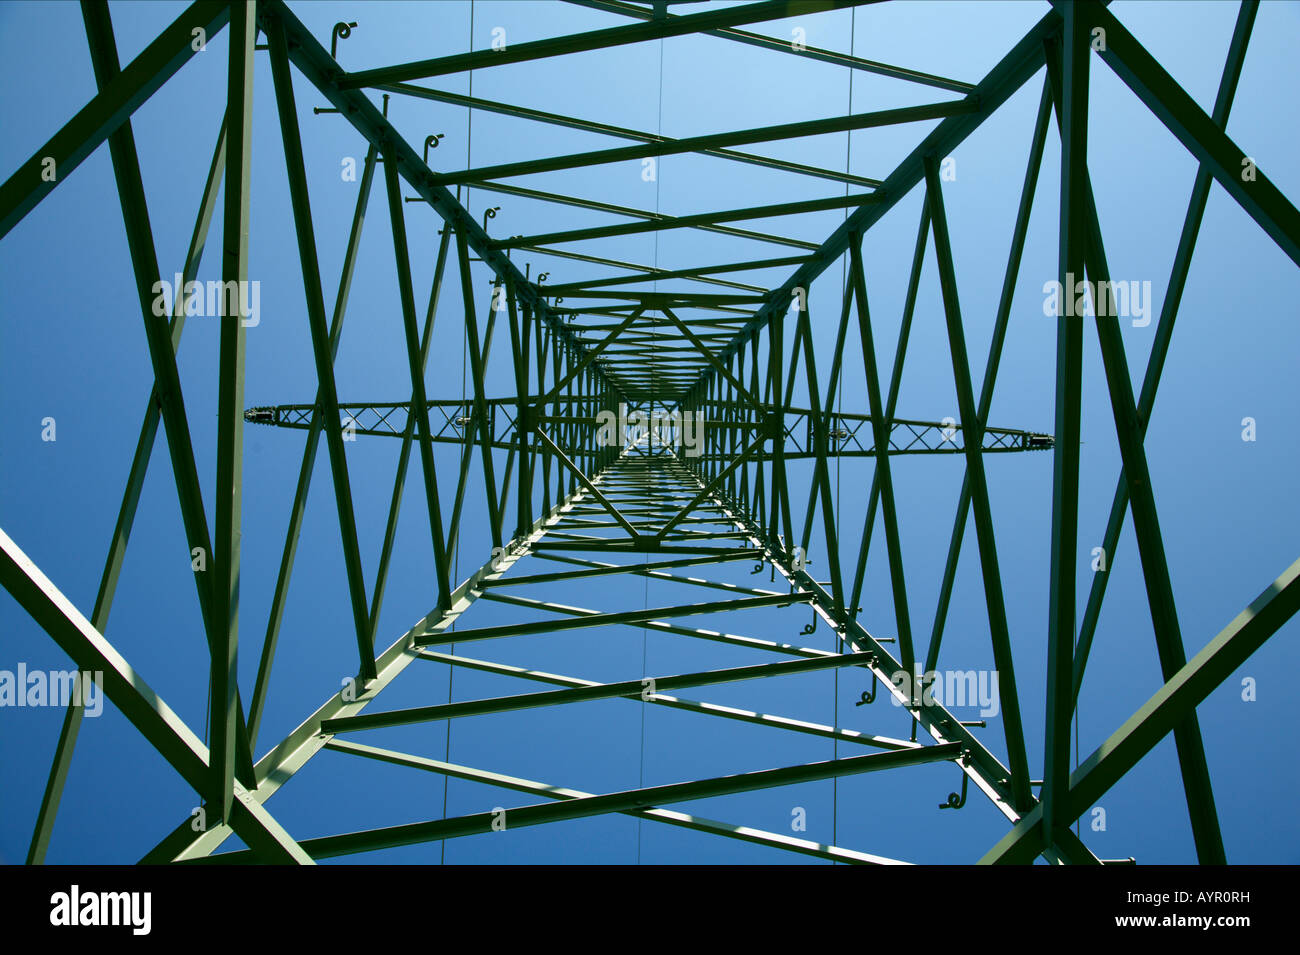 Low angle view inside a power line tower - Stock Image